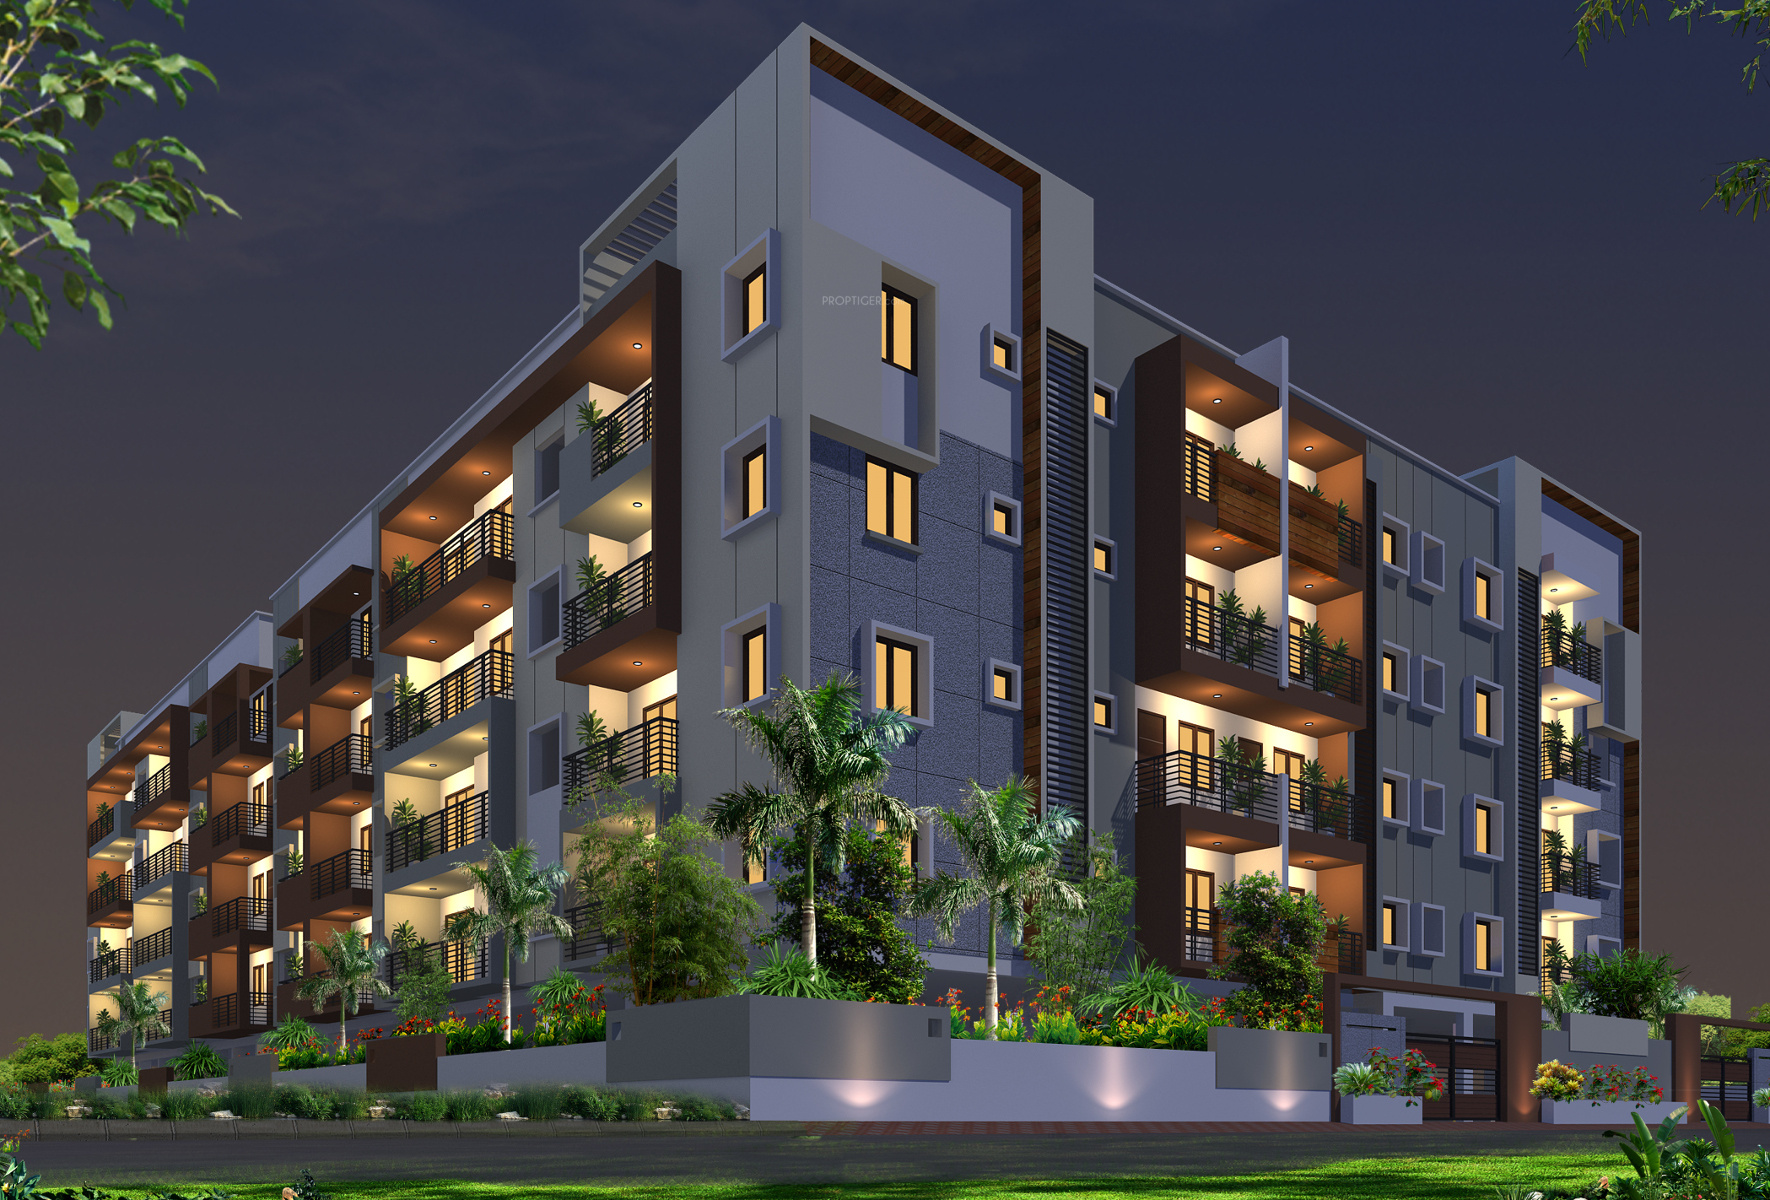 Mahadev Builders Residential Apartment in Uttam Nagar, Delhi - Price,  Location Map, Floor Plan & Reviews :PropTiger.com